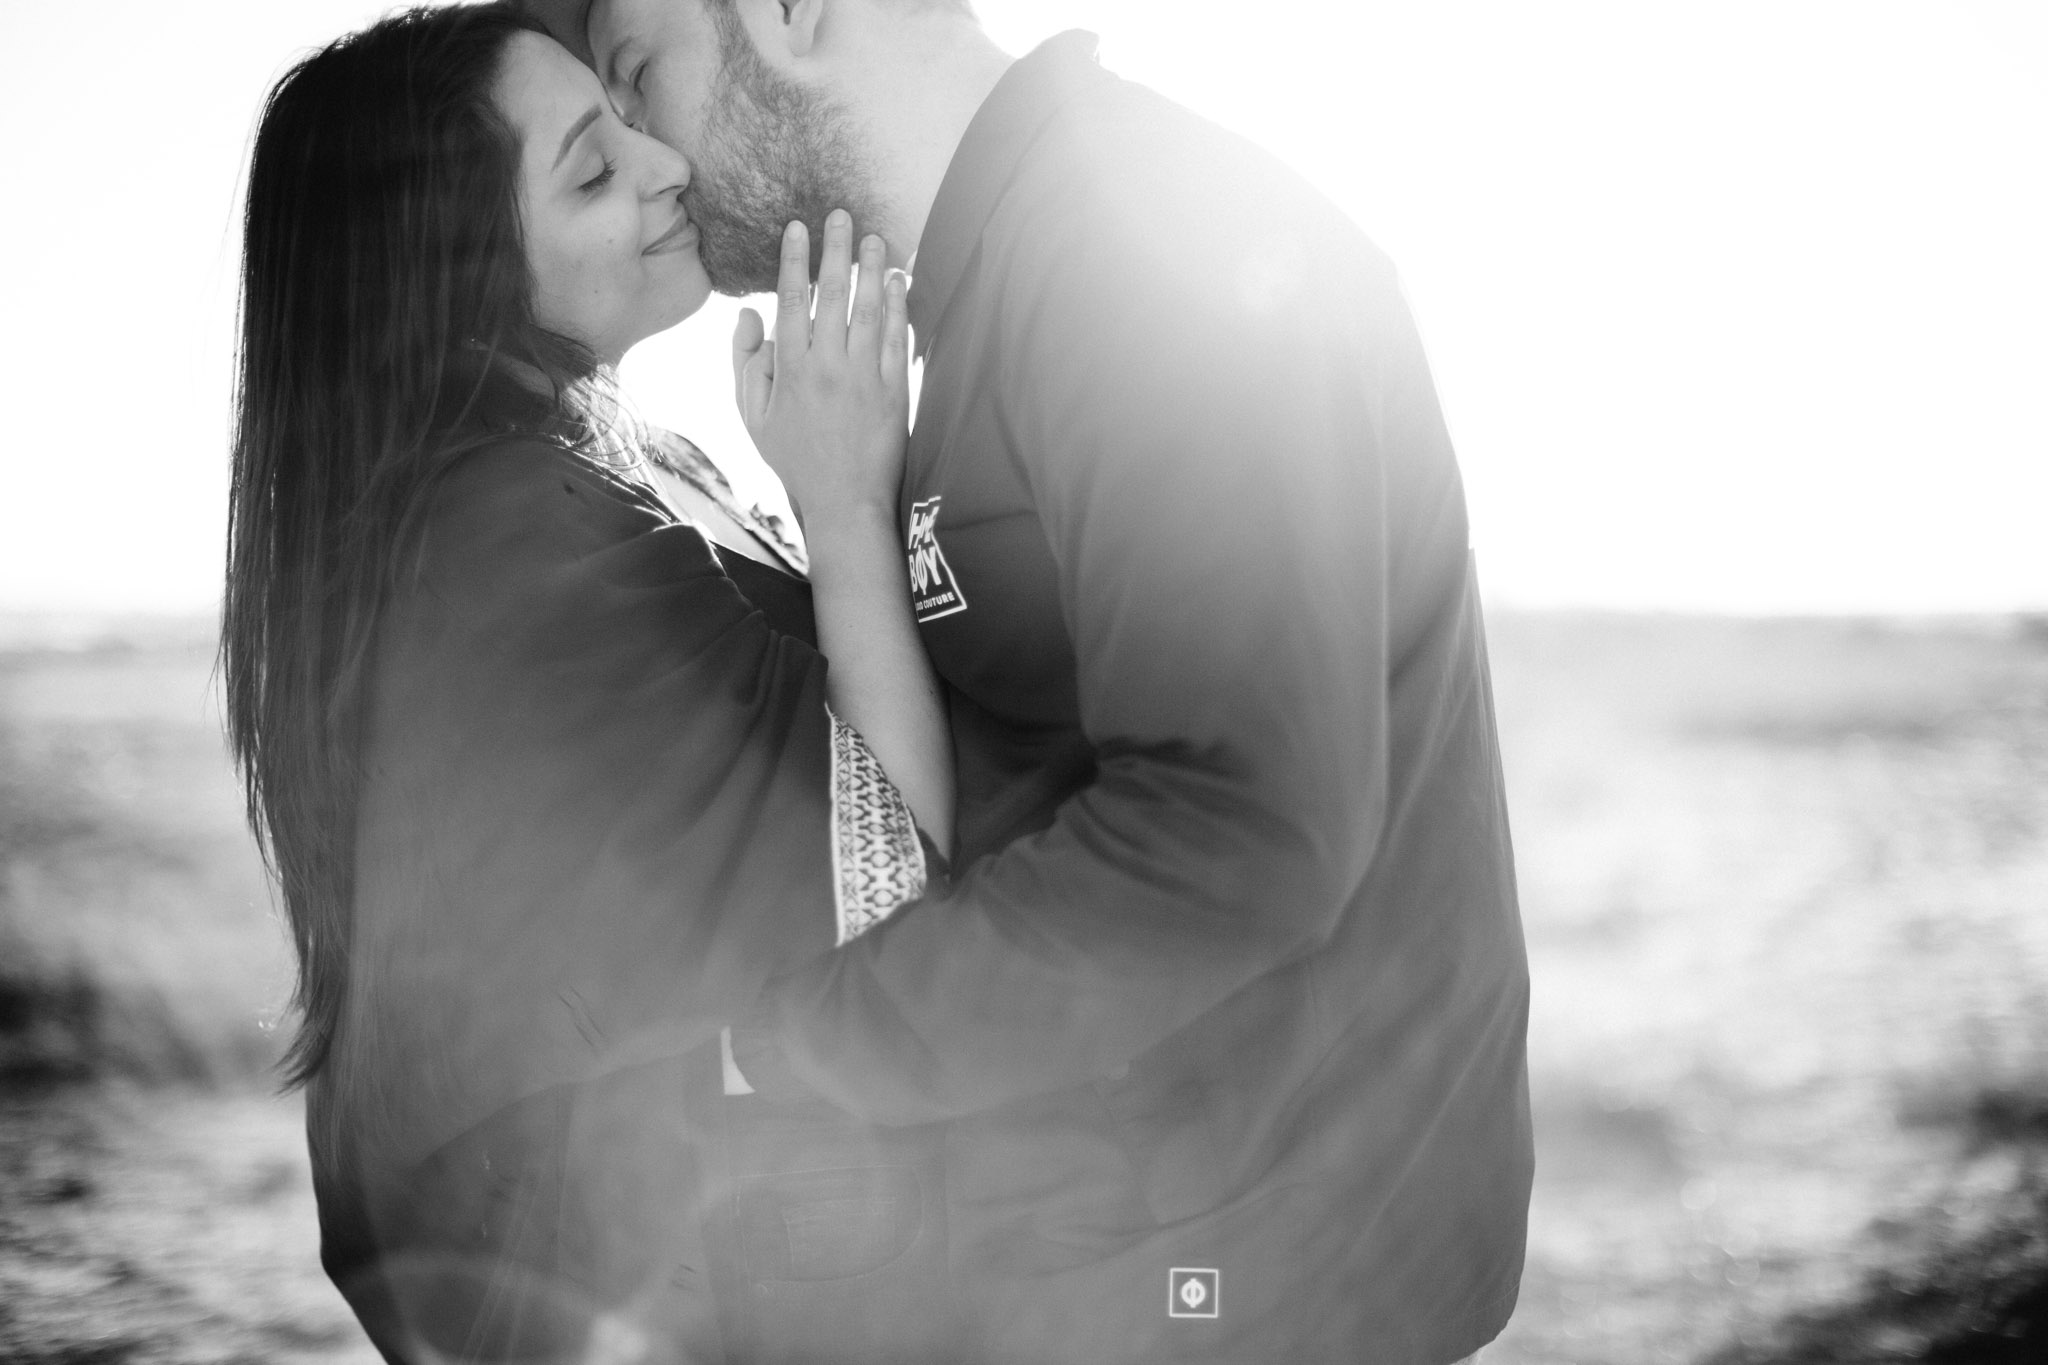 Sankt-Peter-Ording-Engagement-Pia-Anna-Christian-Wedding-Photography-KT-16.jpg